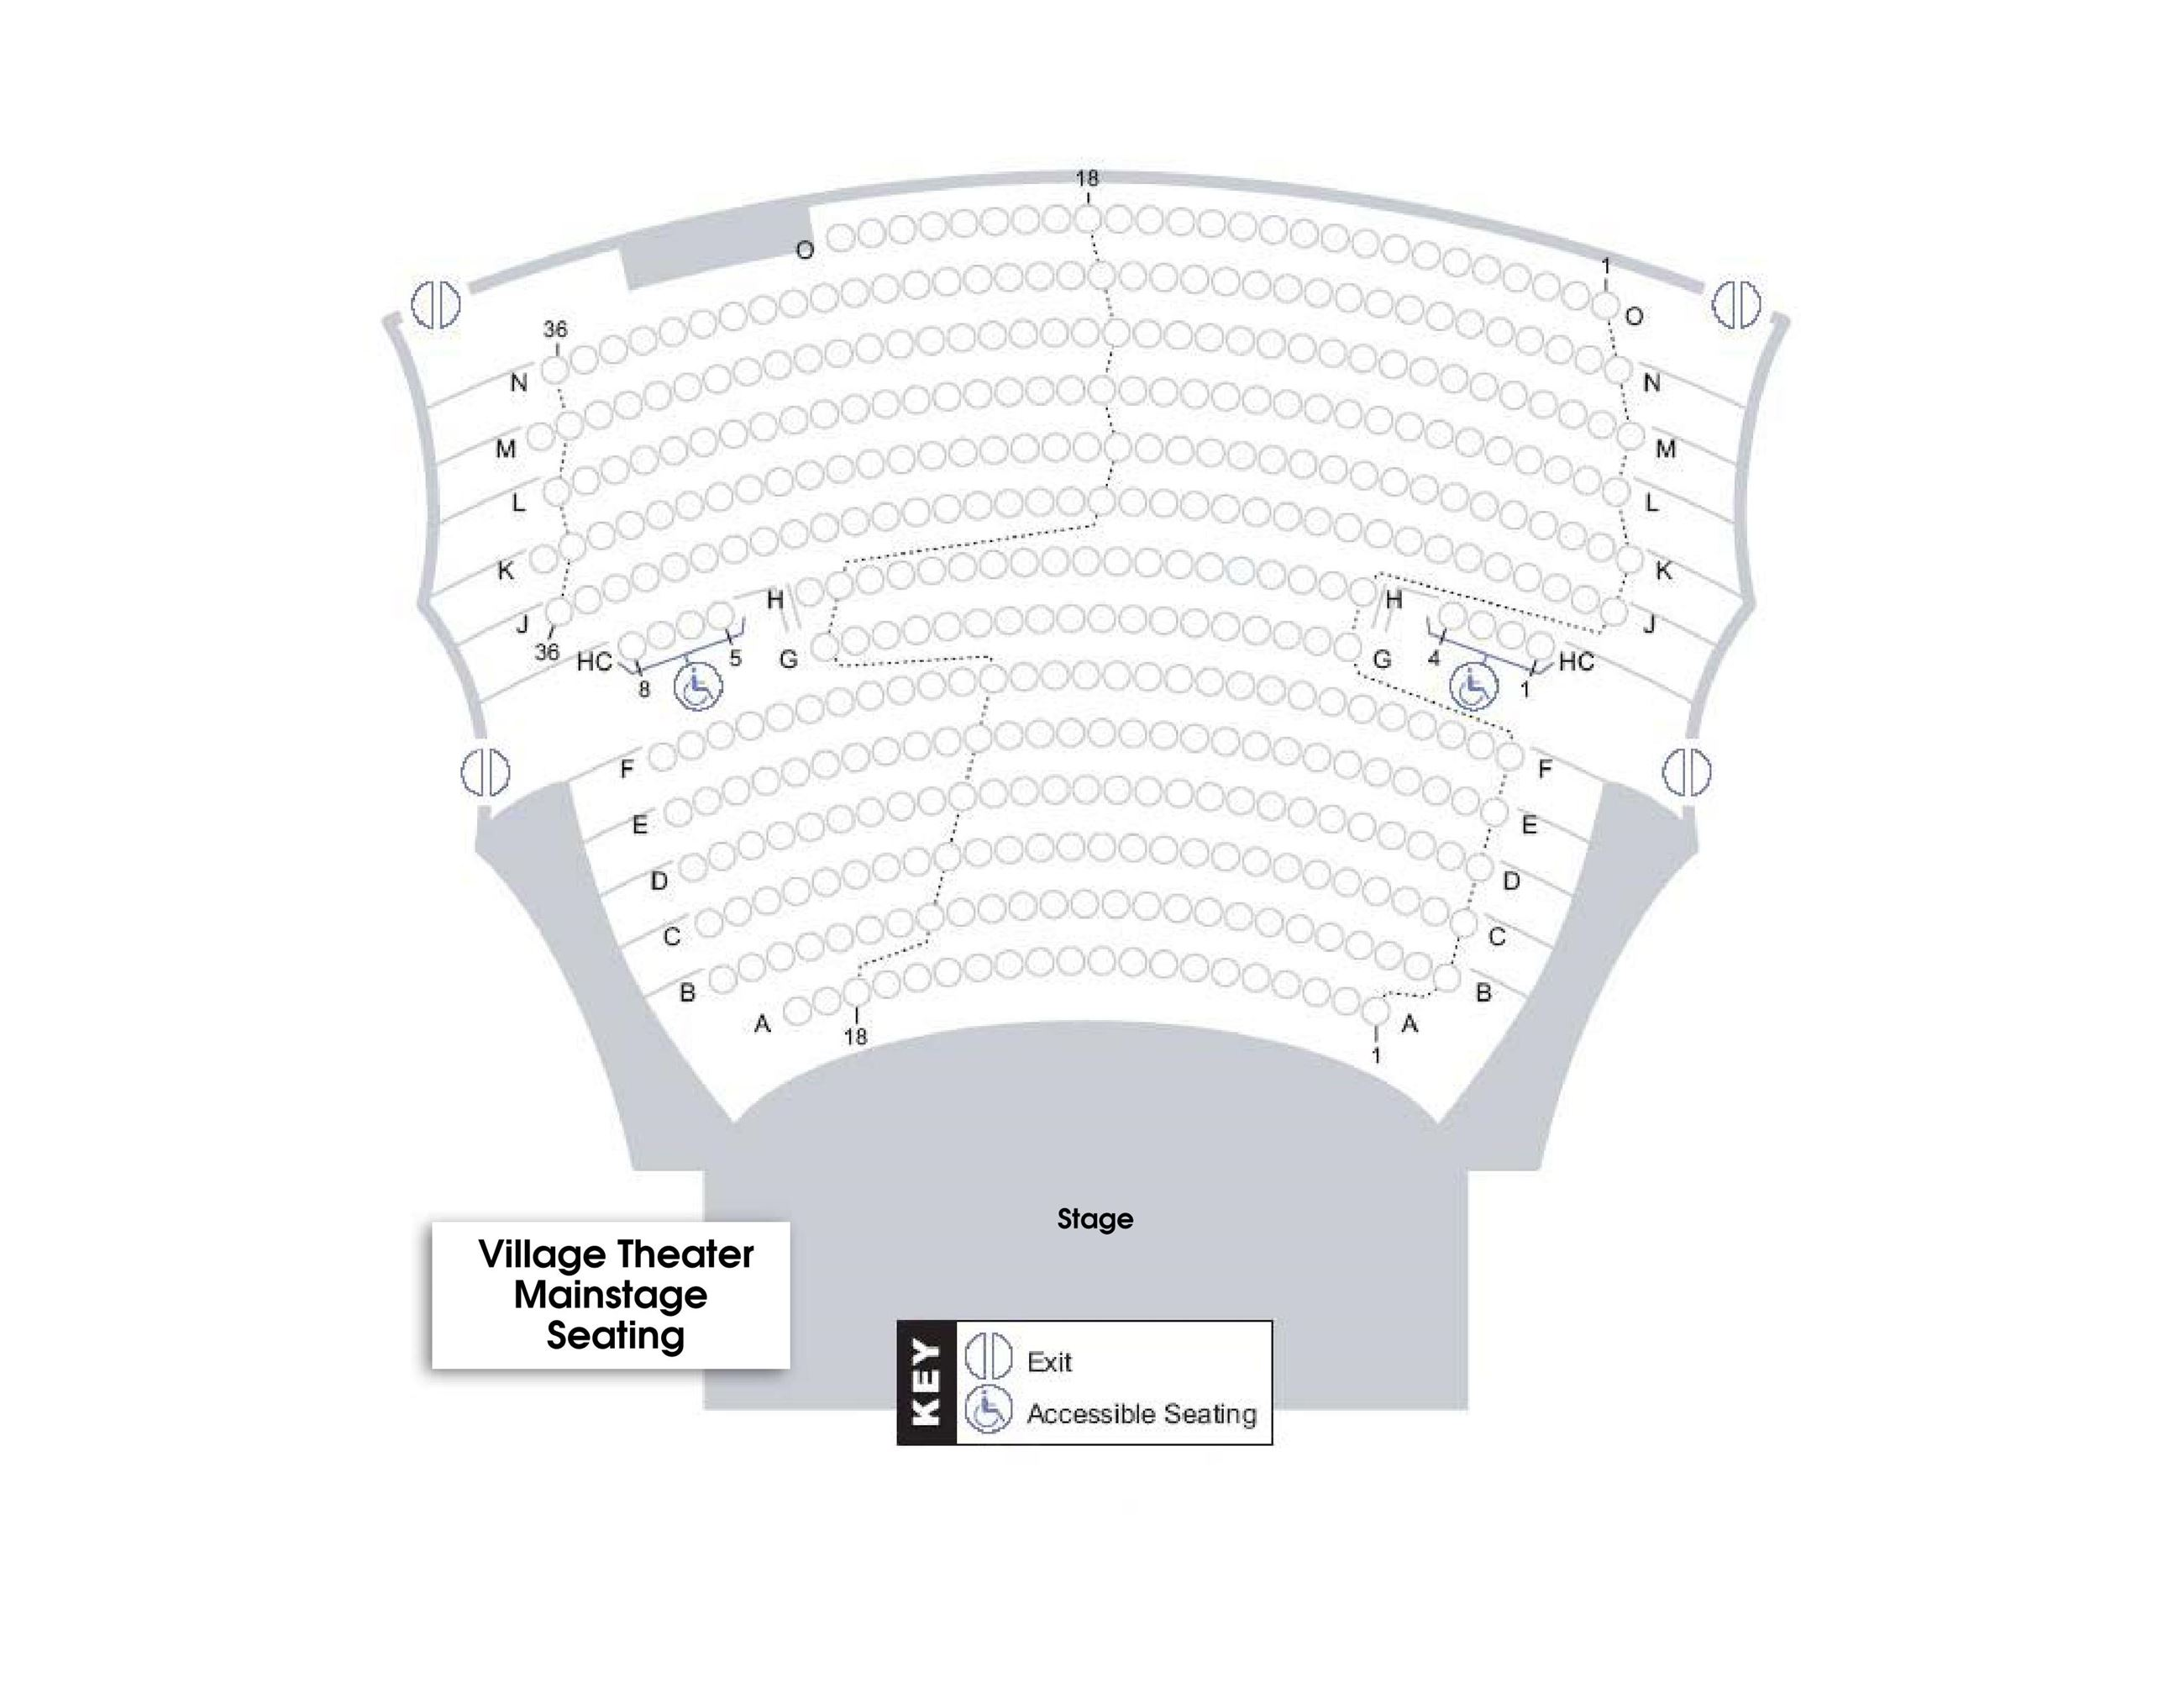 Seating Chart for Main Auditorium at The Village Theater